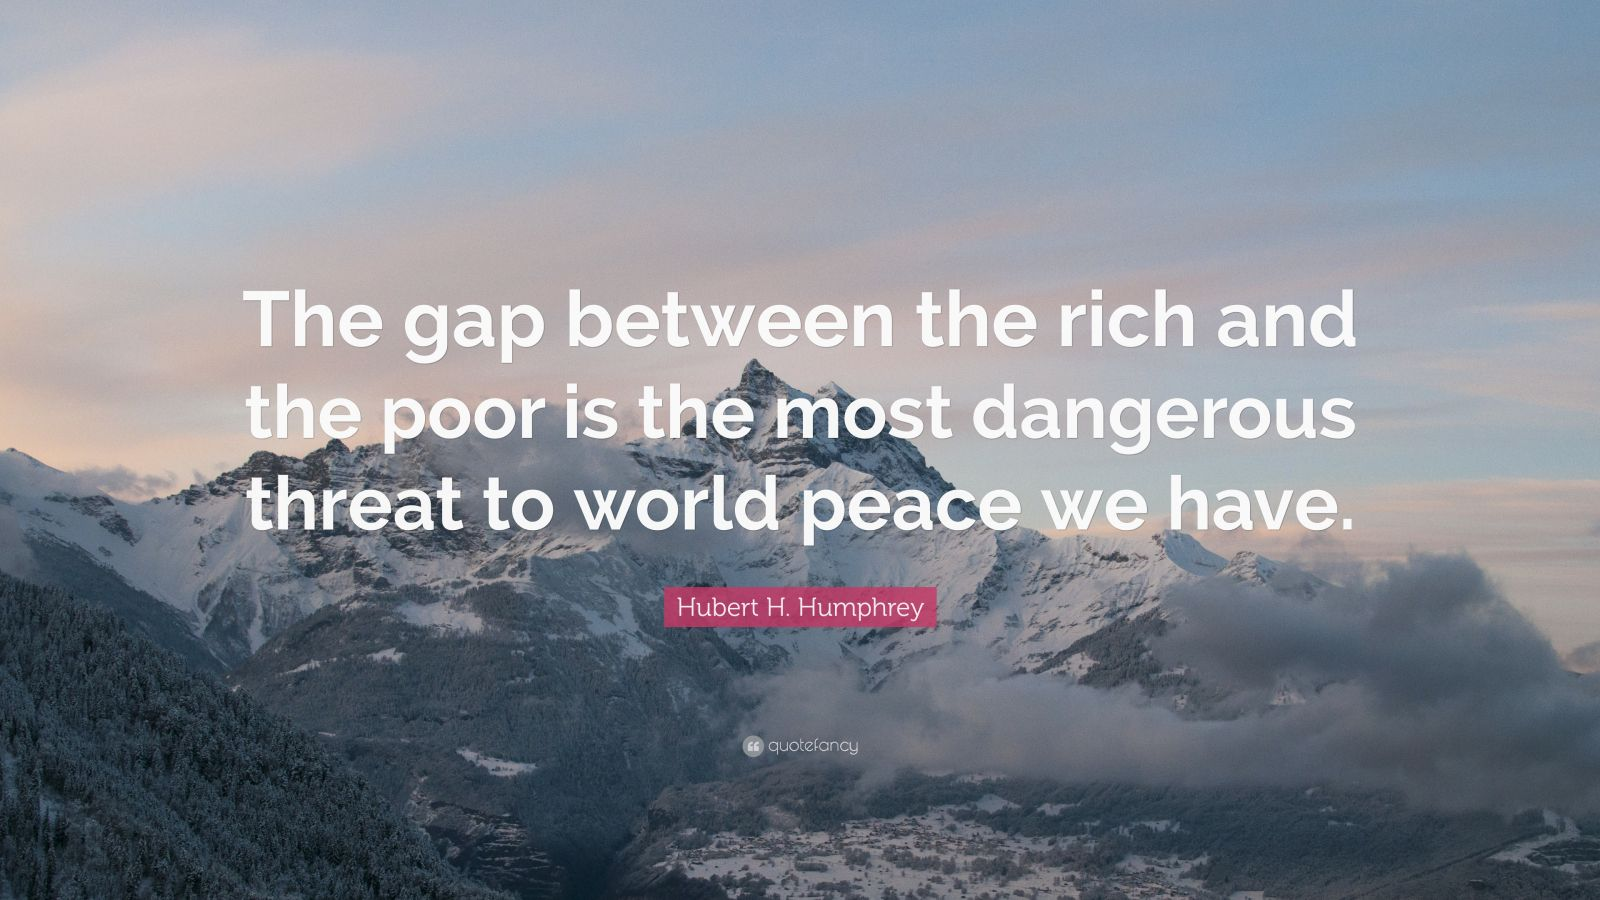 """Hubert H. Humphrey Quote: """"The gap between the rich and the poor is the most dangerous threat to world peace we have."""""""